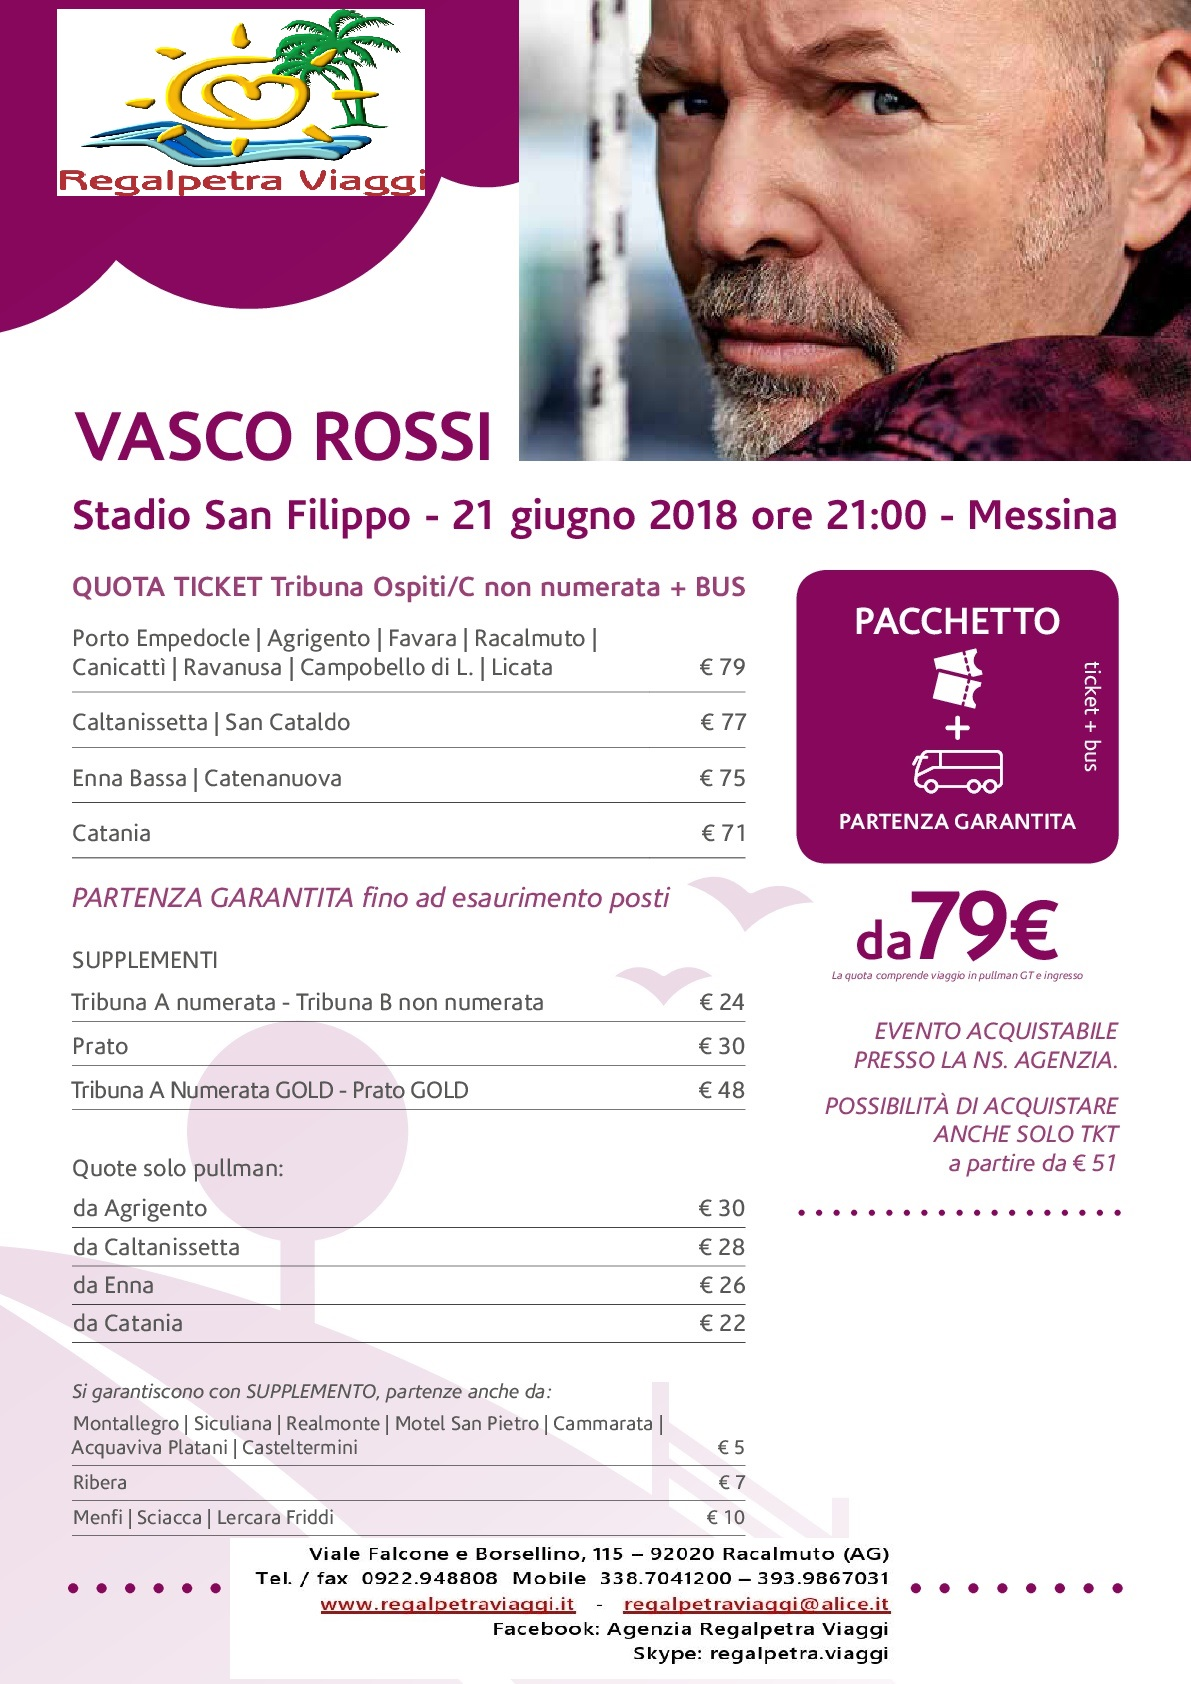 vascorossi-messina-21062018-001